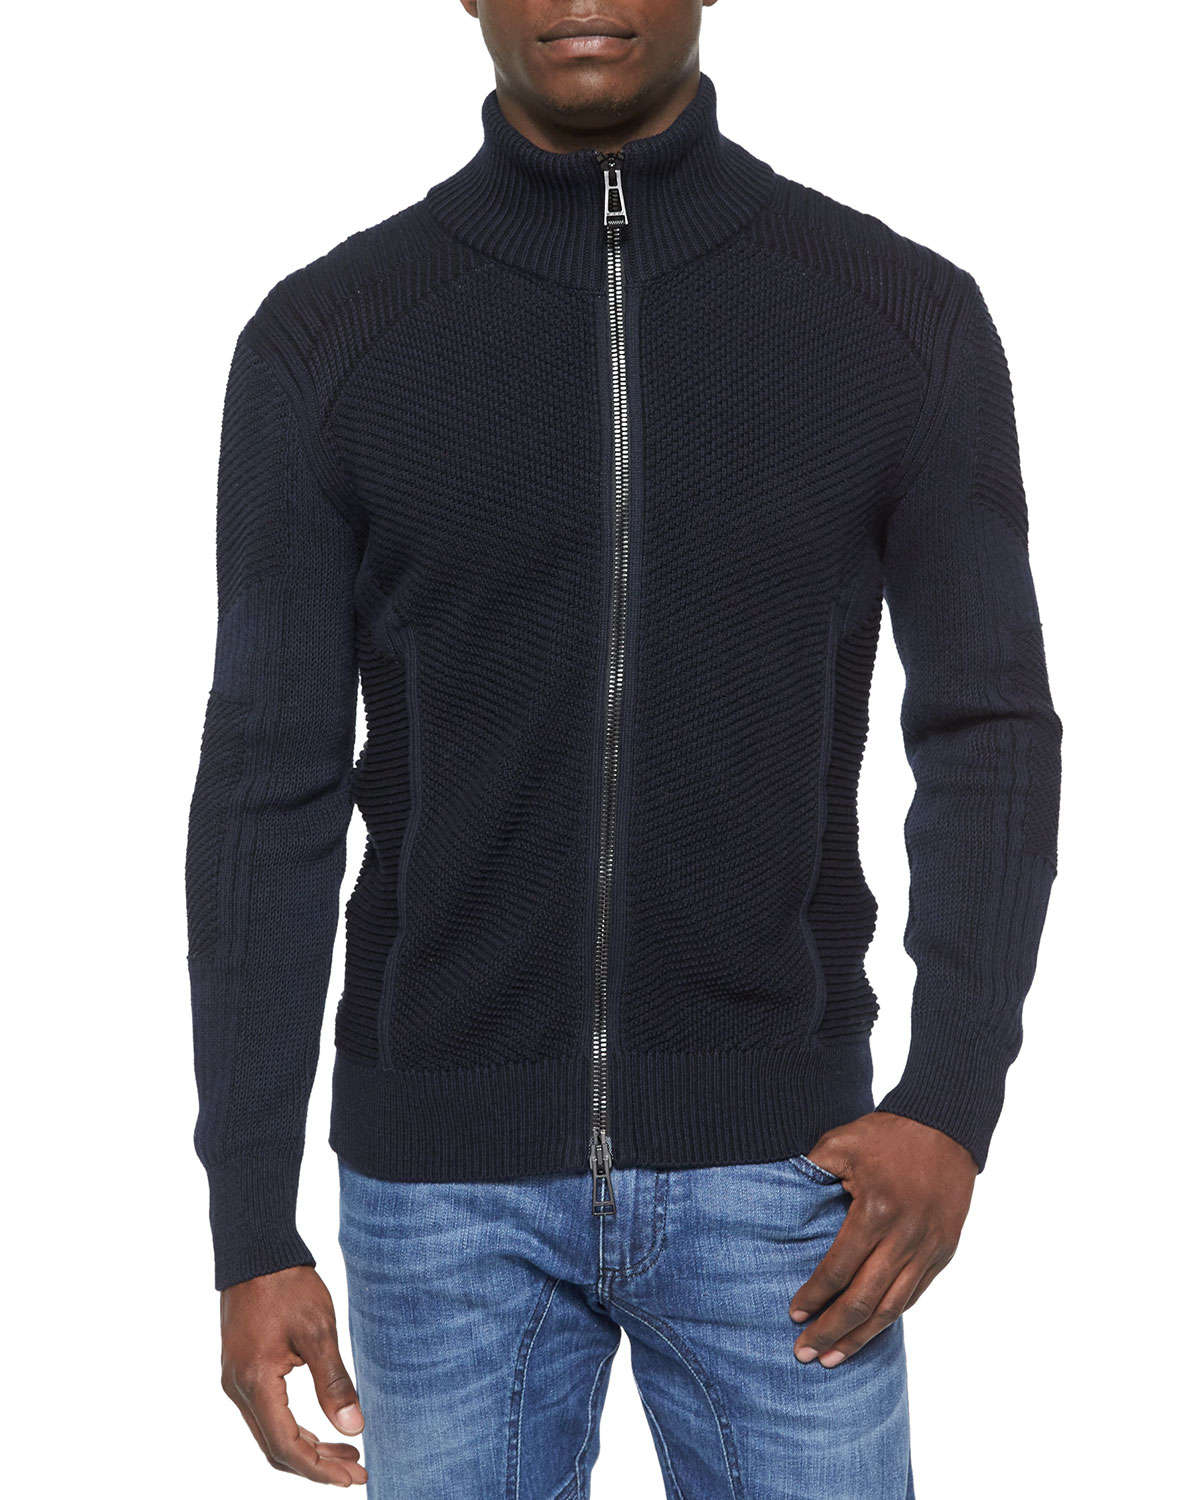 Belstaff Cleveland Textured Full Zip Sweater In Black For Men Lyst